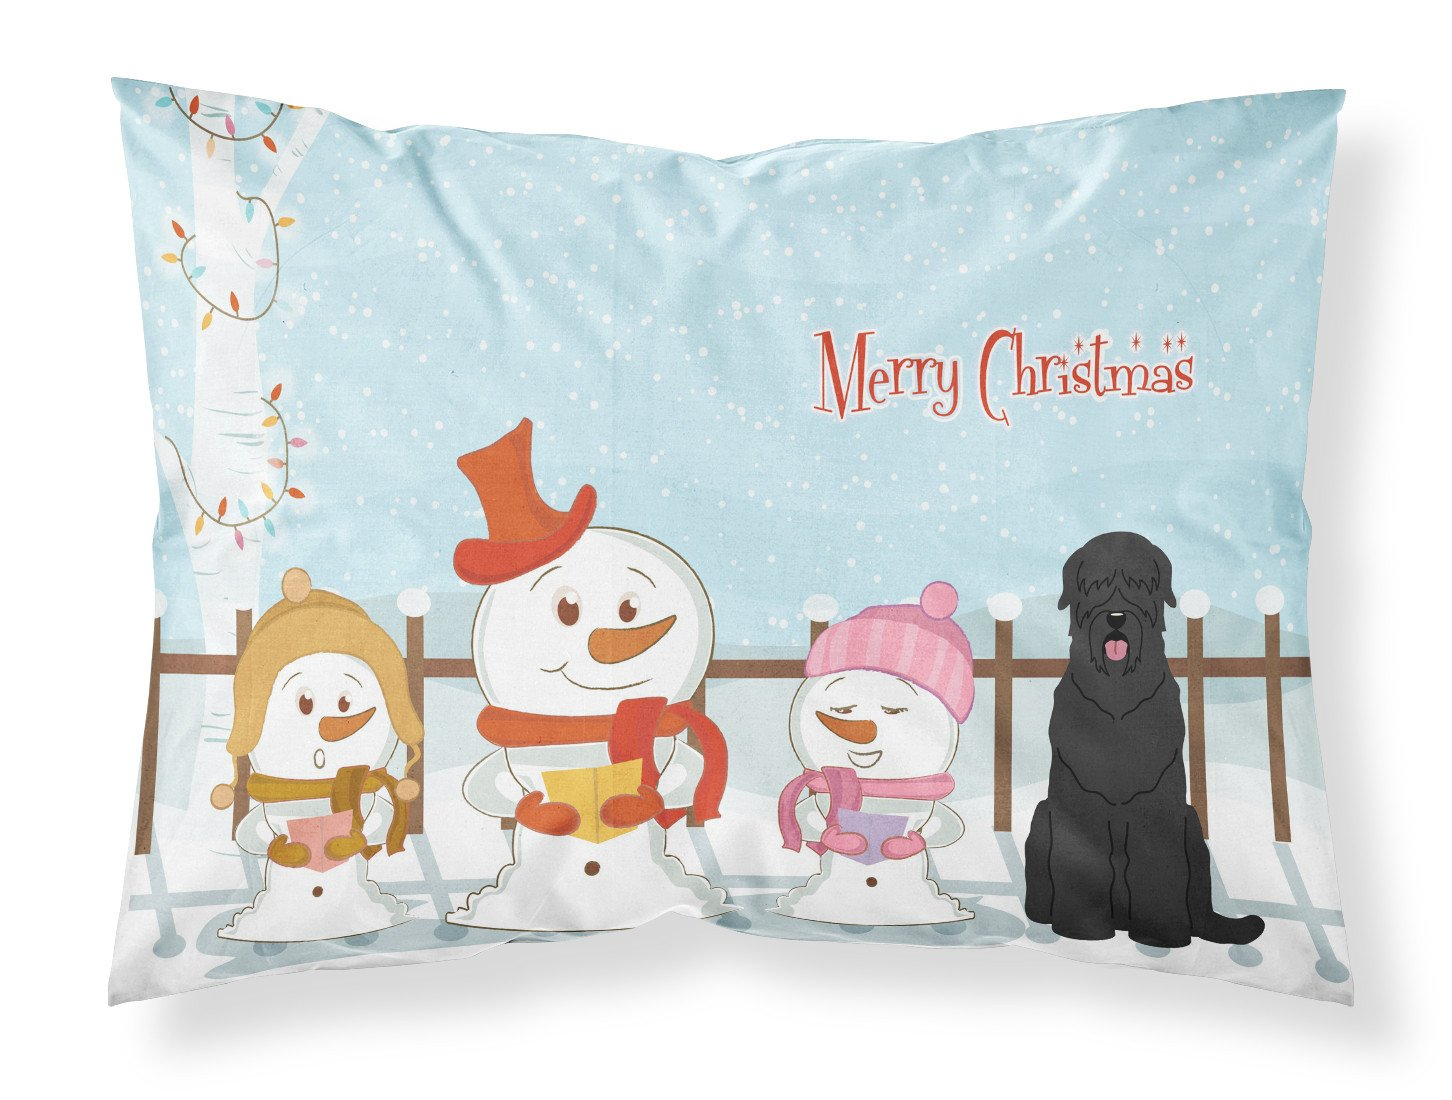 Merry Christmas Carolers Black Russian Terrier Fabric Standard Pillowcase BB2357PILLOWCASE by Caroline's Treasures